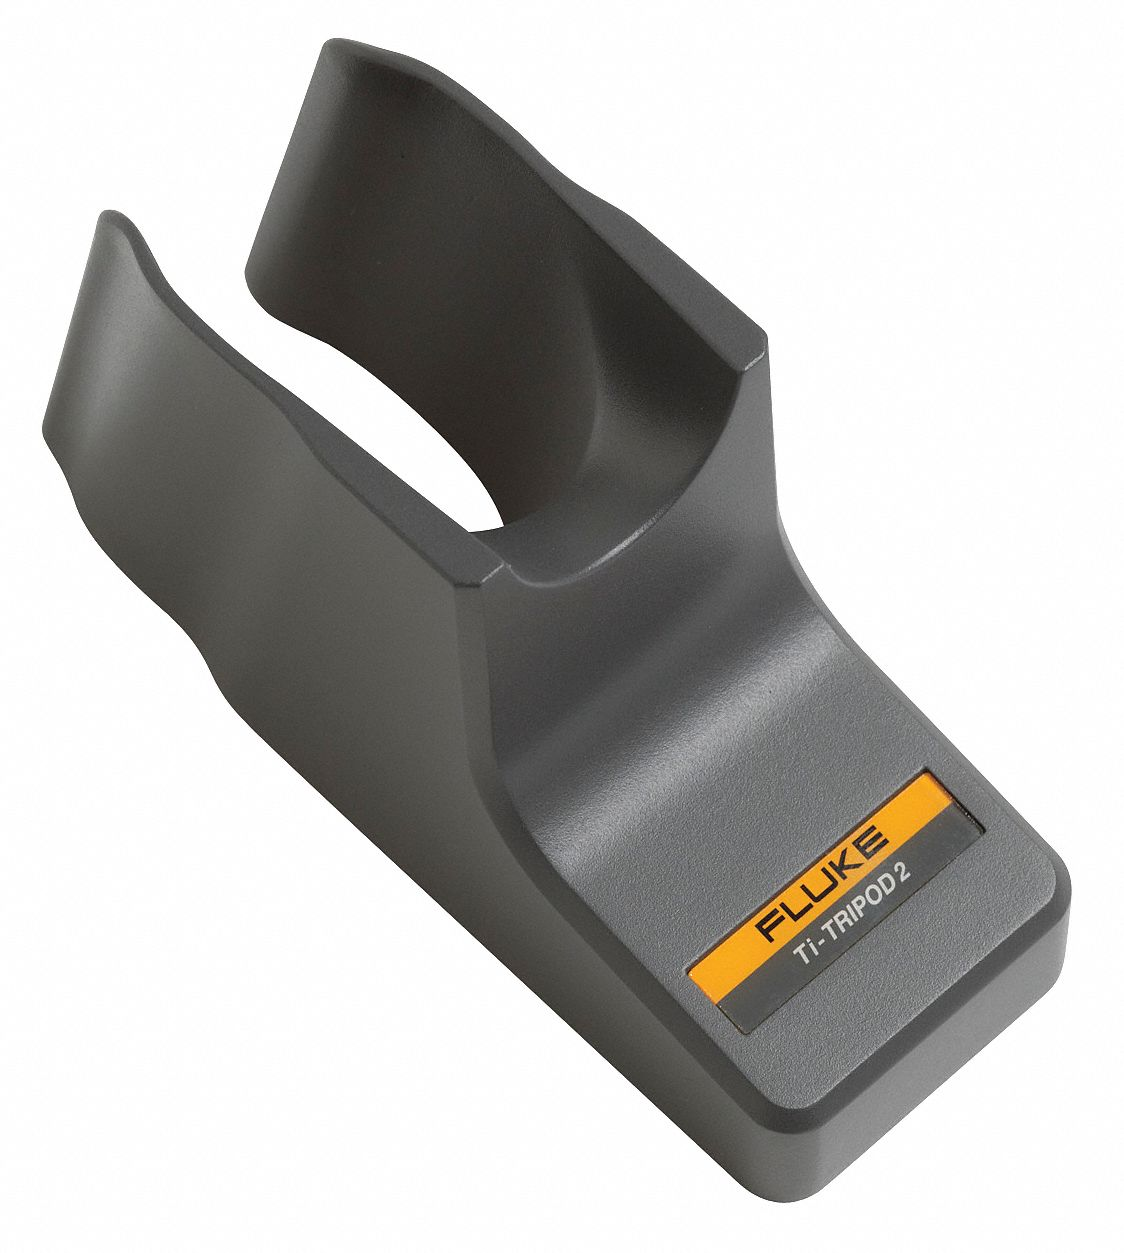 Infrared Thermometer And Imager Accessories